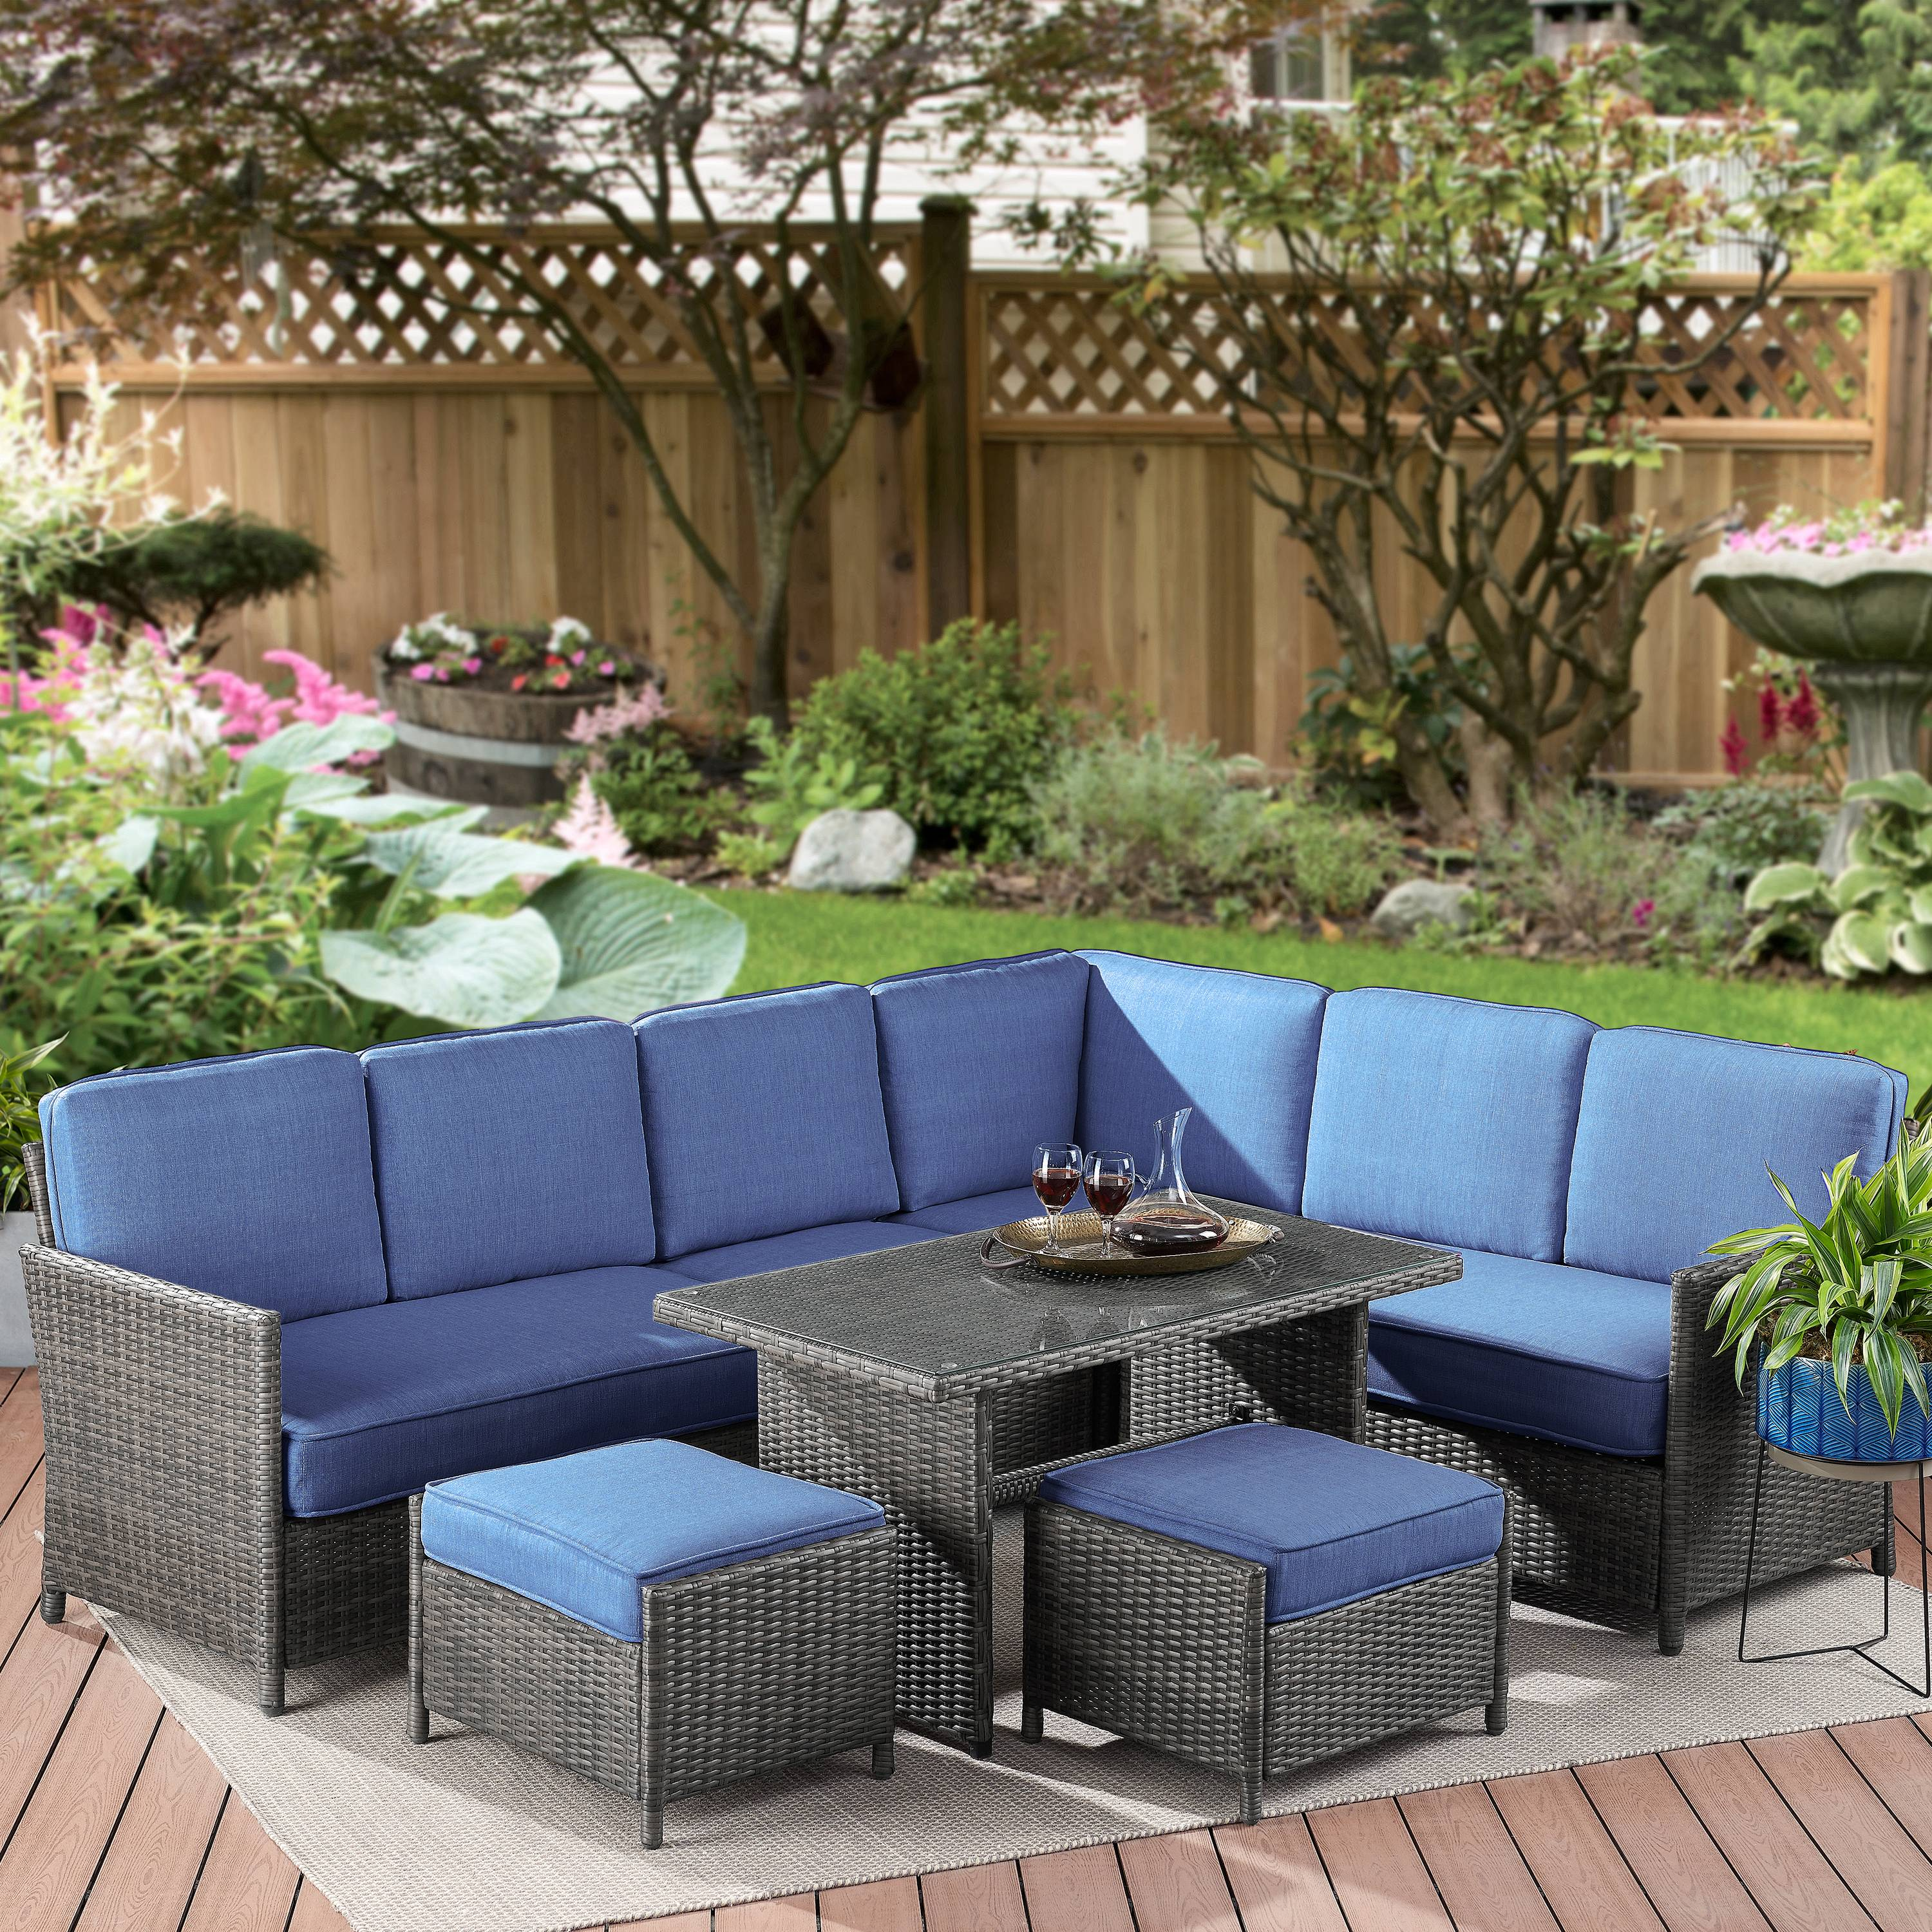 Better Homes & Gardens Mayers Bay 7-Piece Sectional Dining Set with Navy Cushions